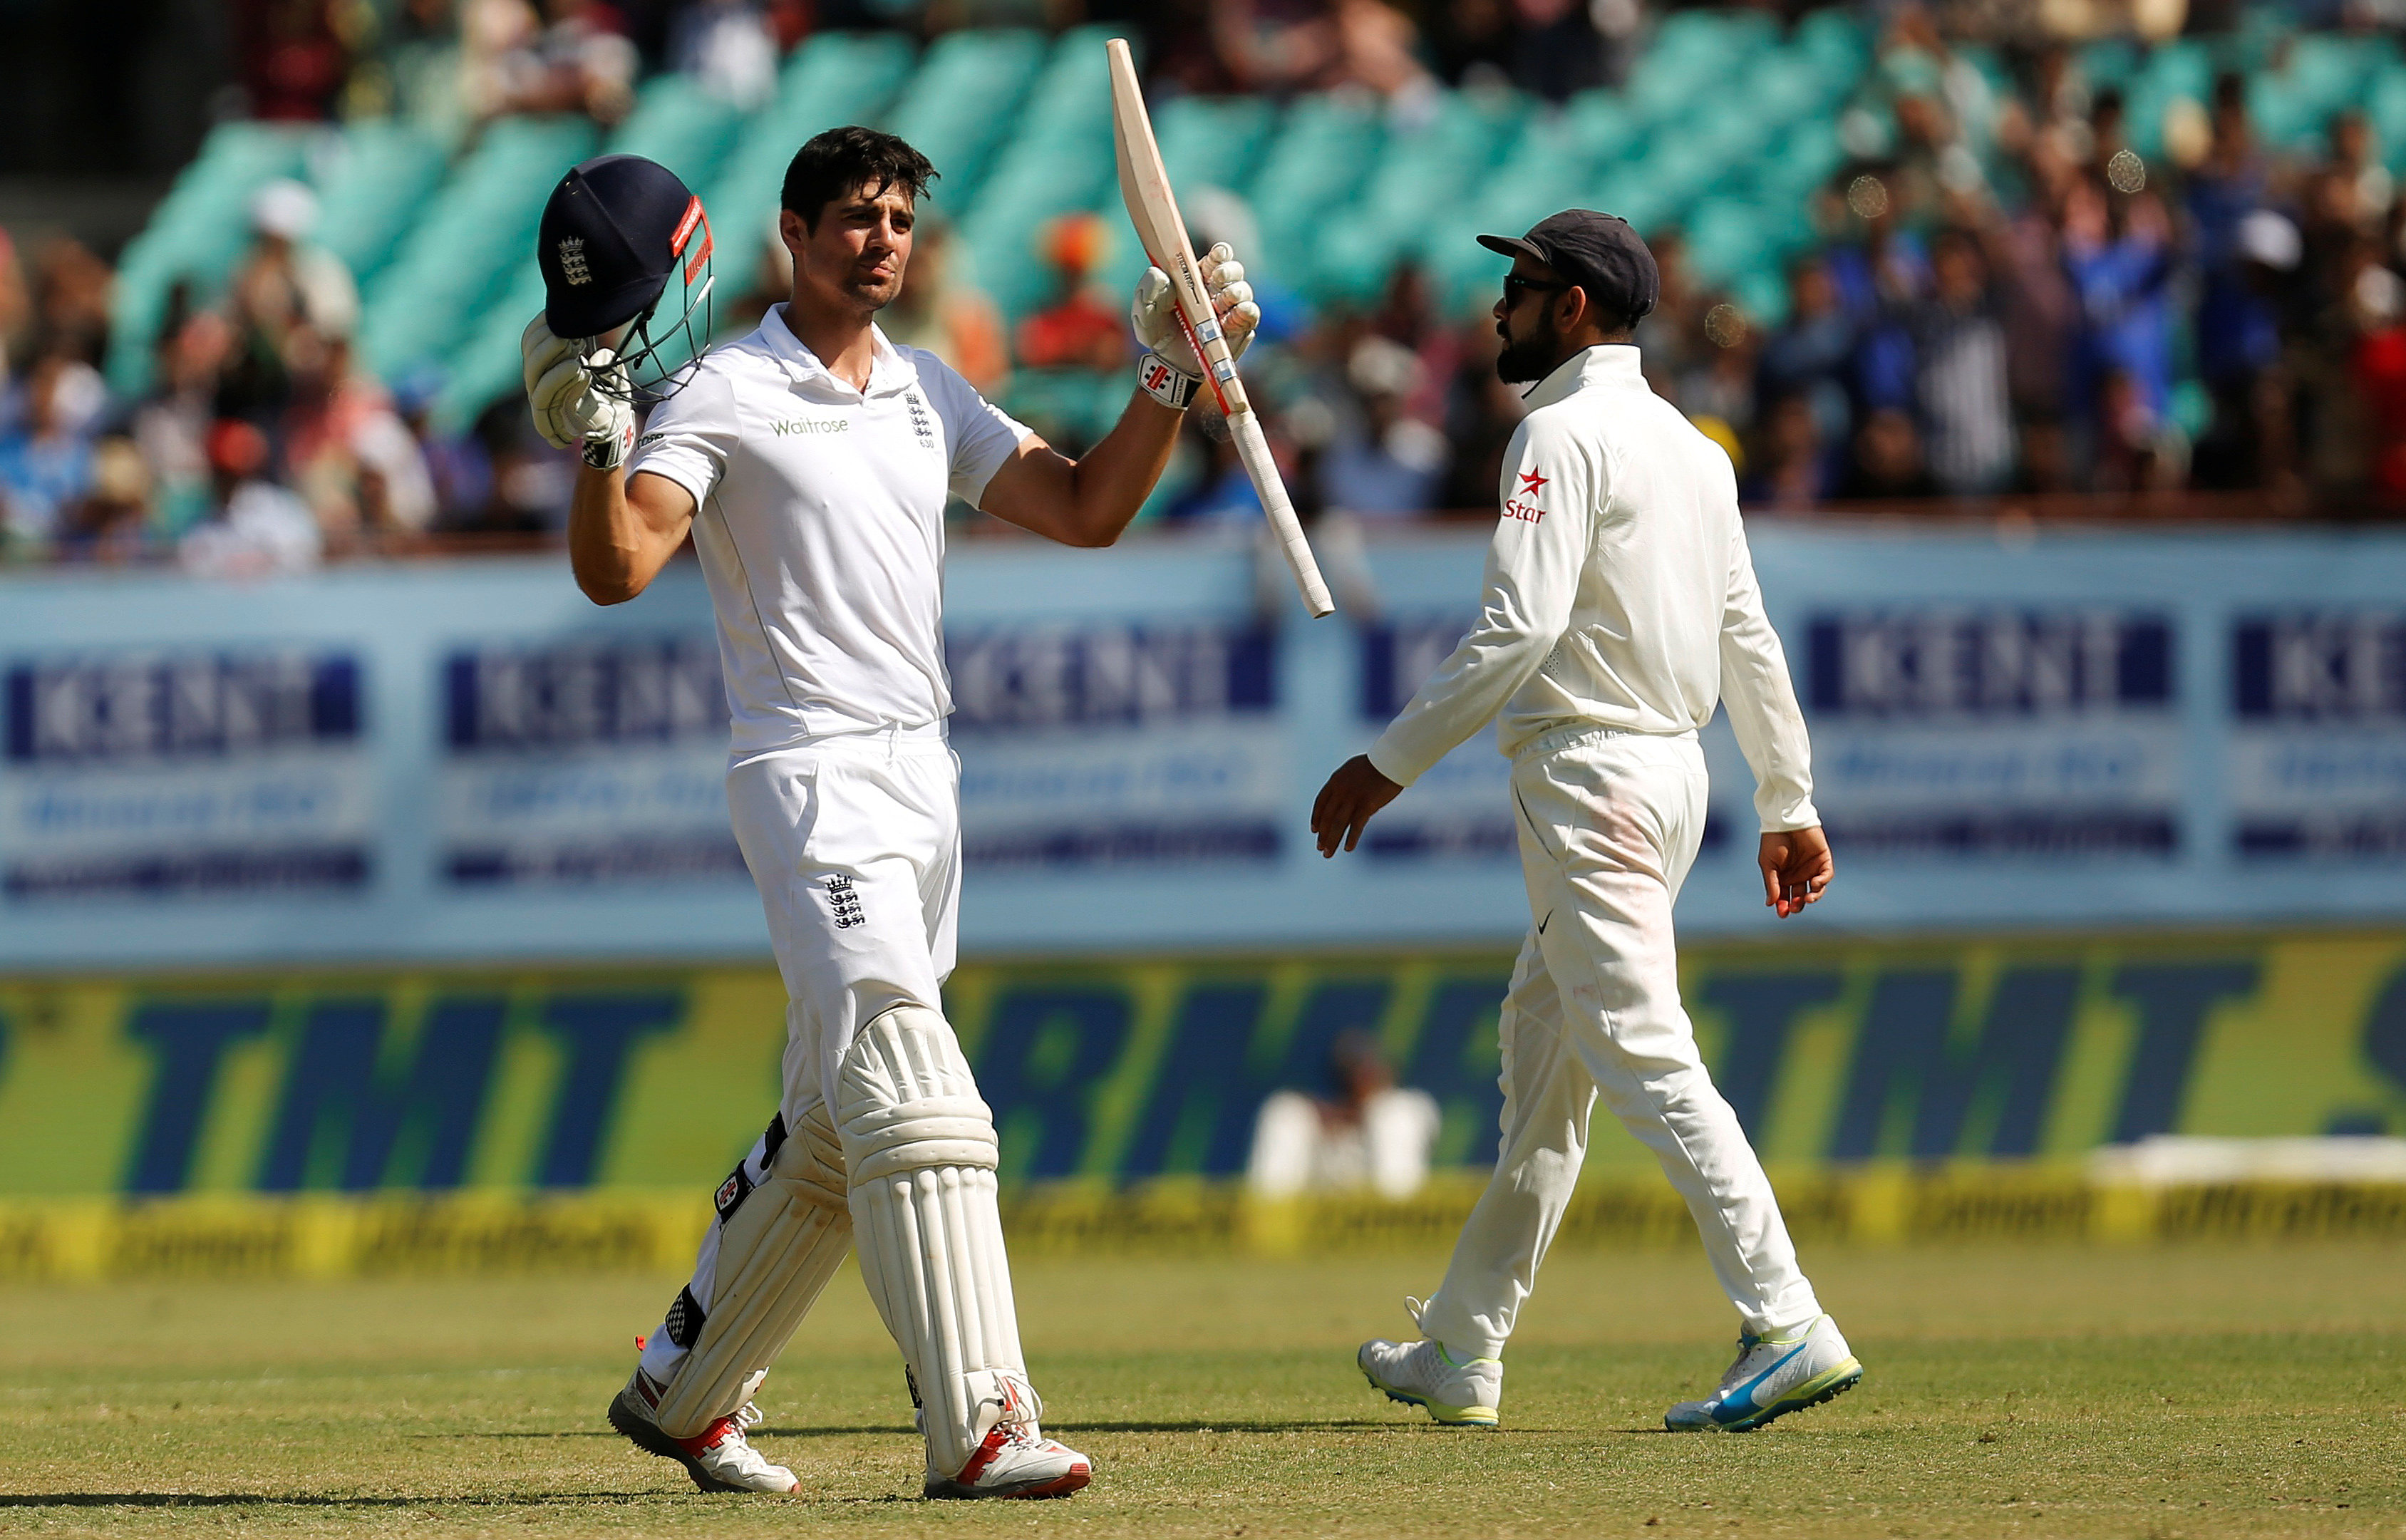 Alastair Cook celebrates his century as Virat Kohli (R) looks on. PHOTO: REUTERS/Amit Dave